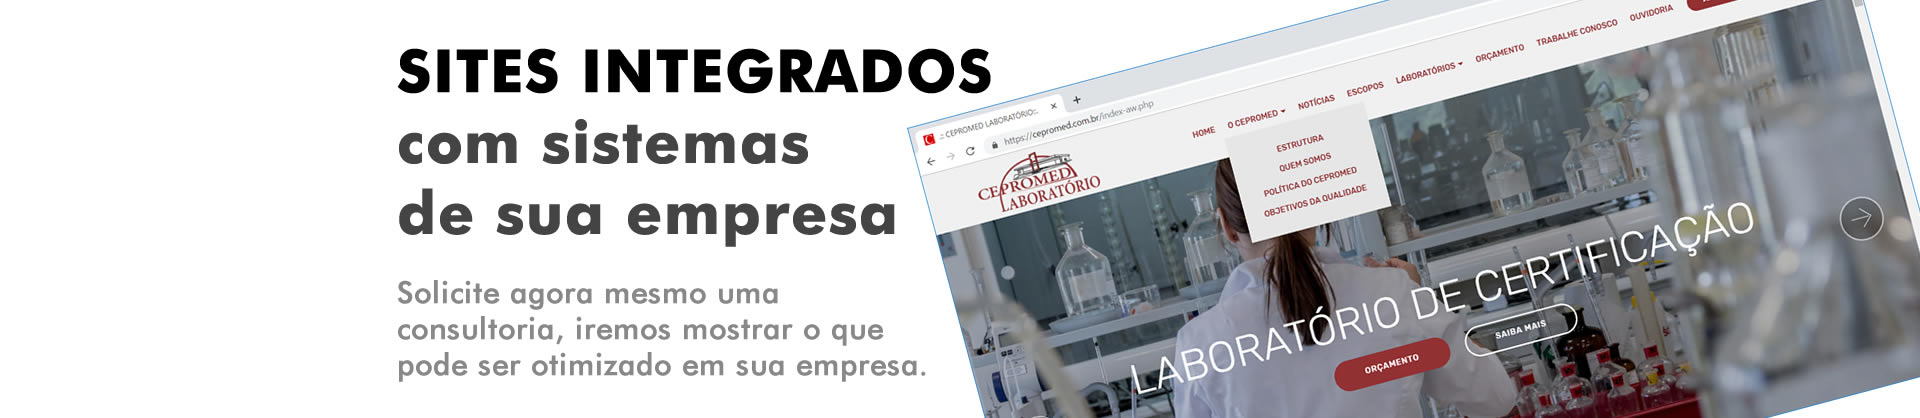 Sites Integrados